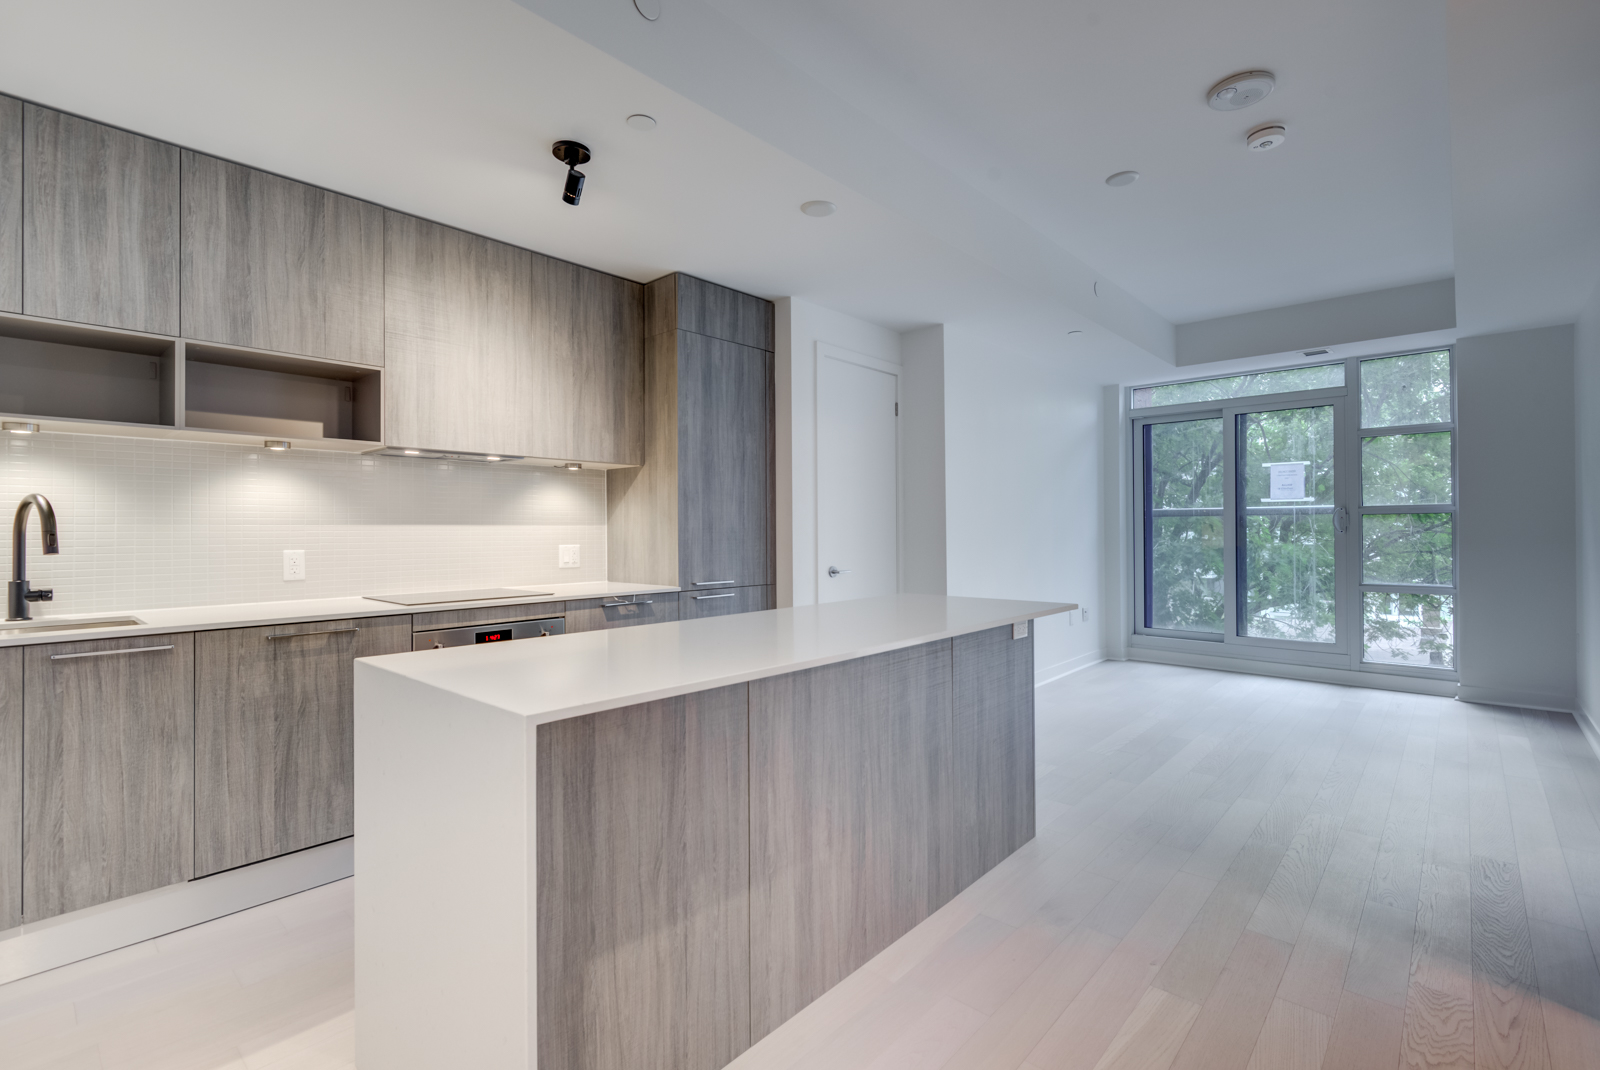 501 Adelaide St W Unit 408 – empty kitchen, dining and living room with light laminate floors and walls.